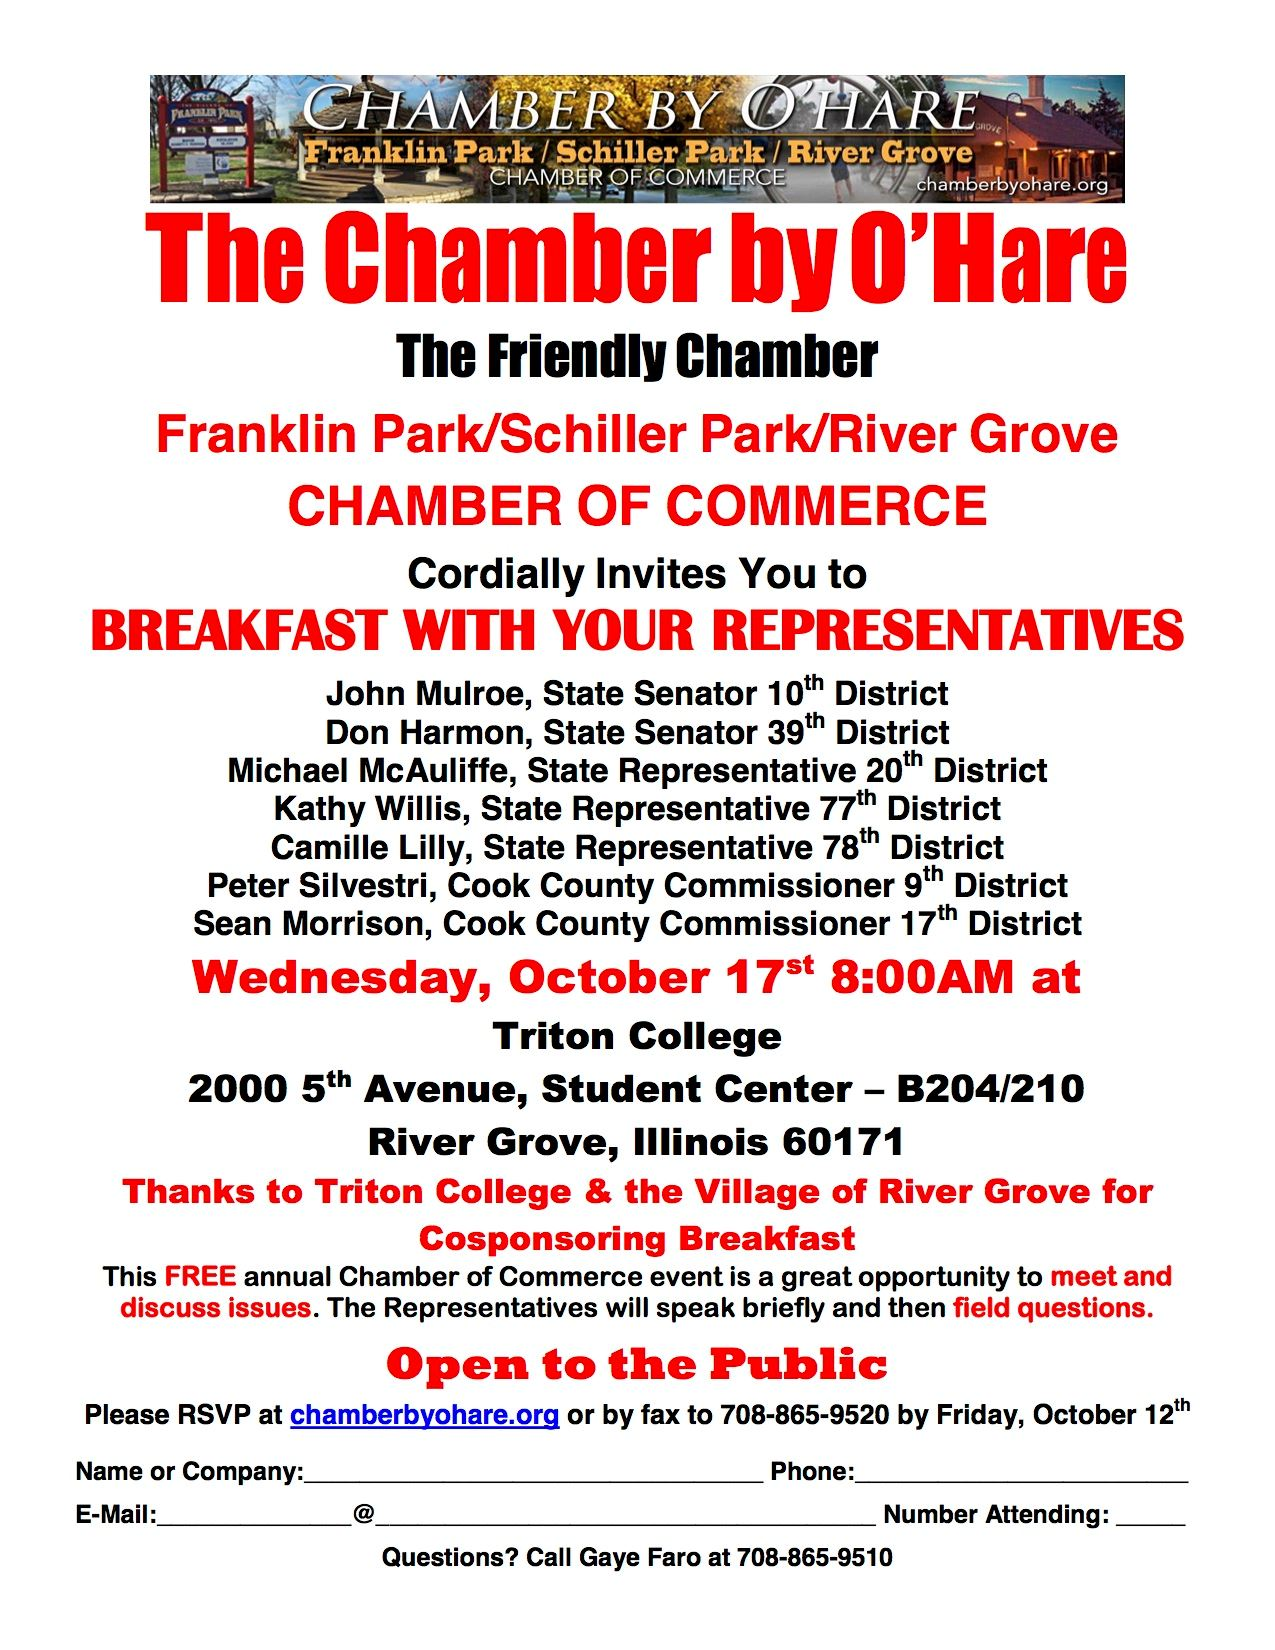 Flyer with information regarding an upcoming meeting with elected officials